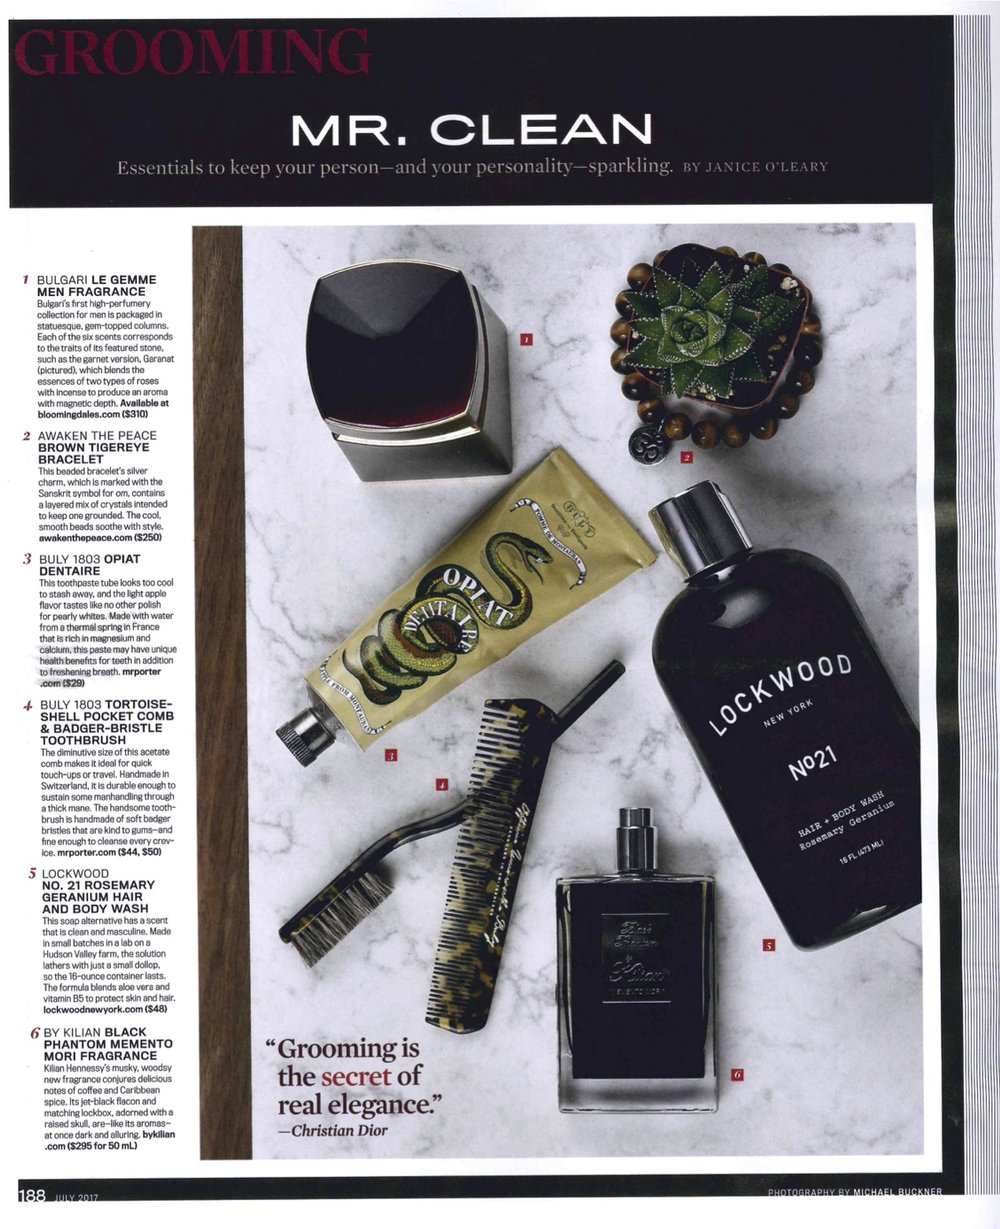 ROBB REPORT: Mr. Clean Essentials